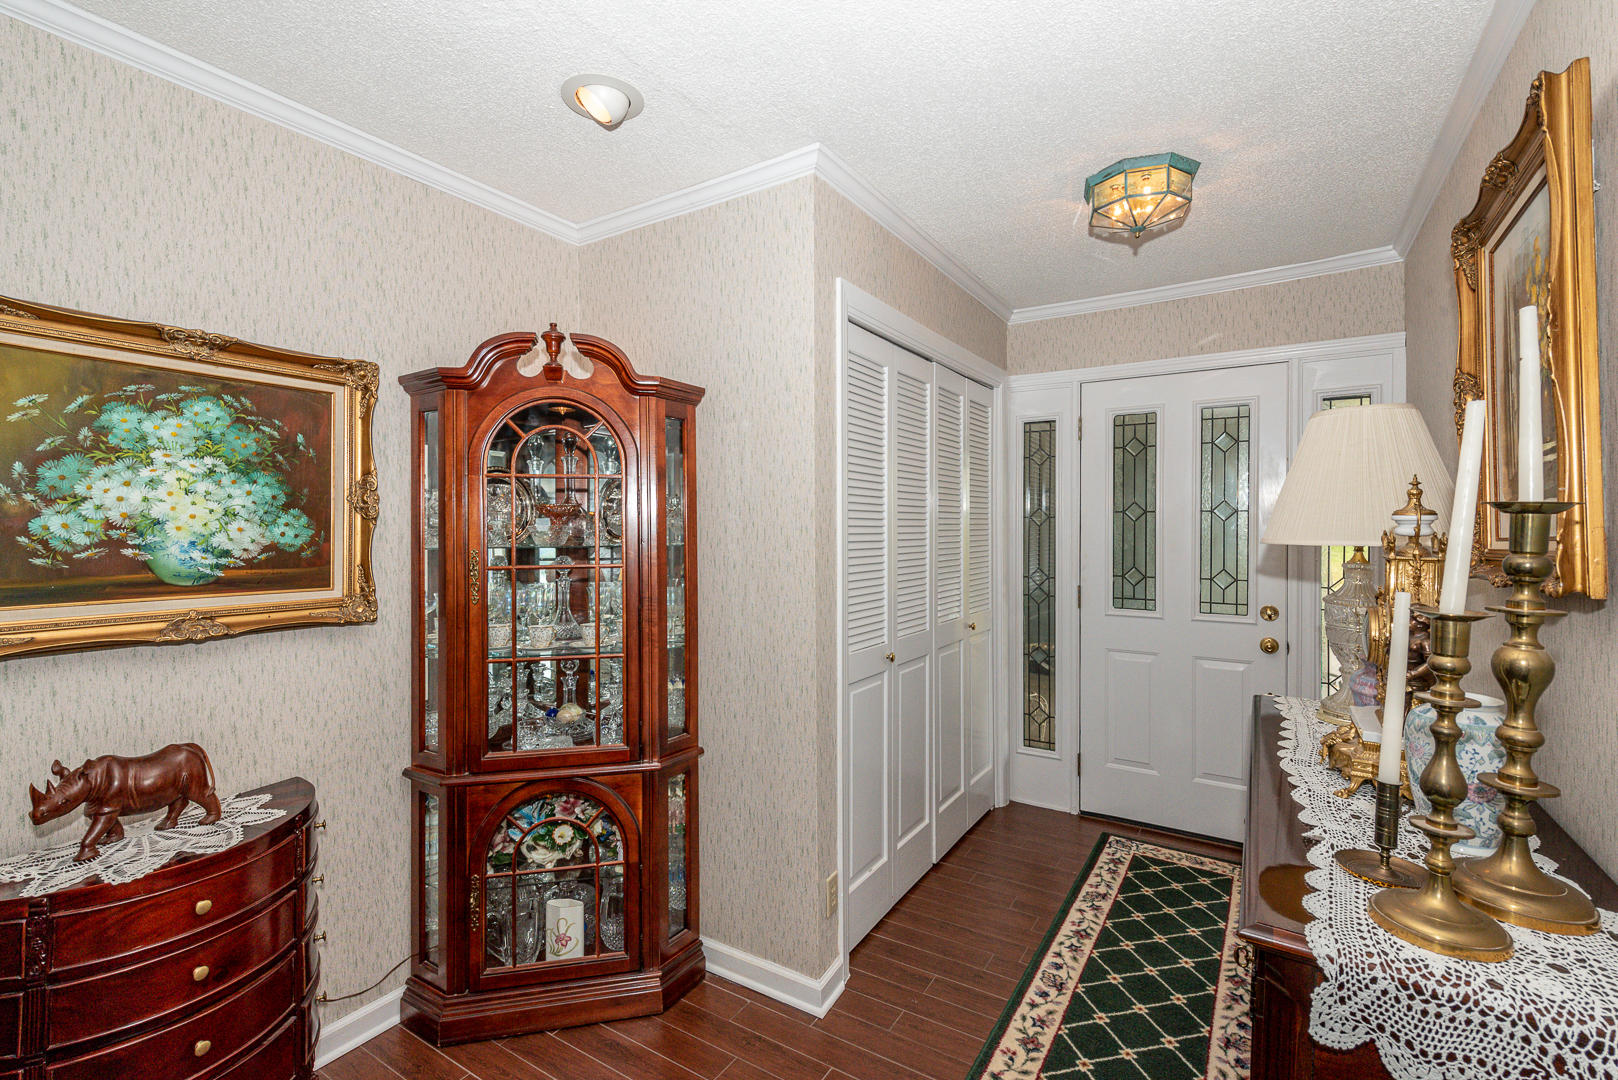 4354 Gravelly Hills Rd: